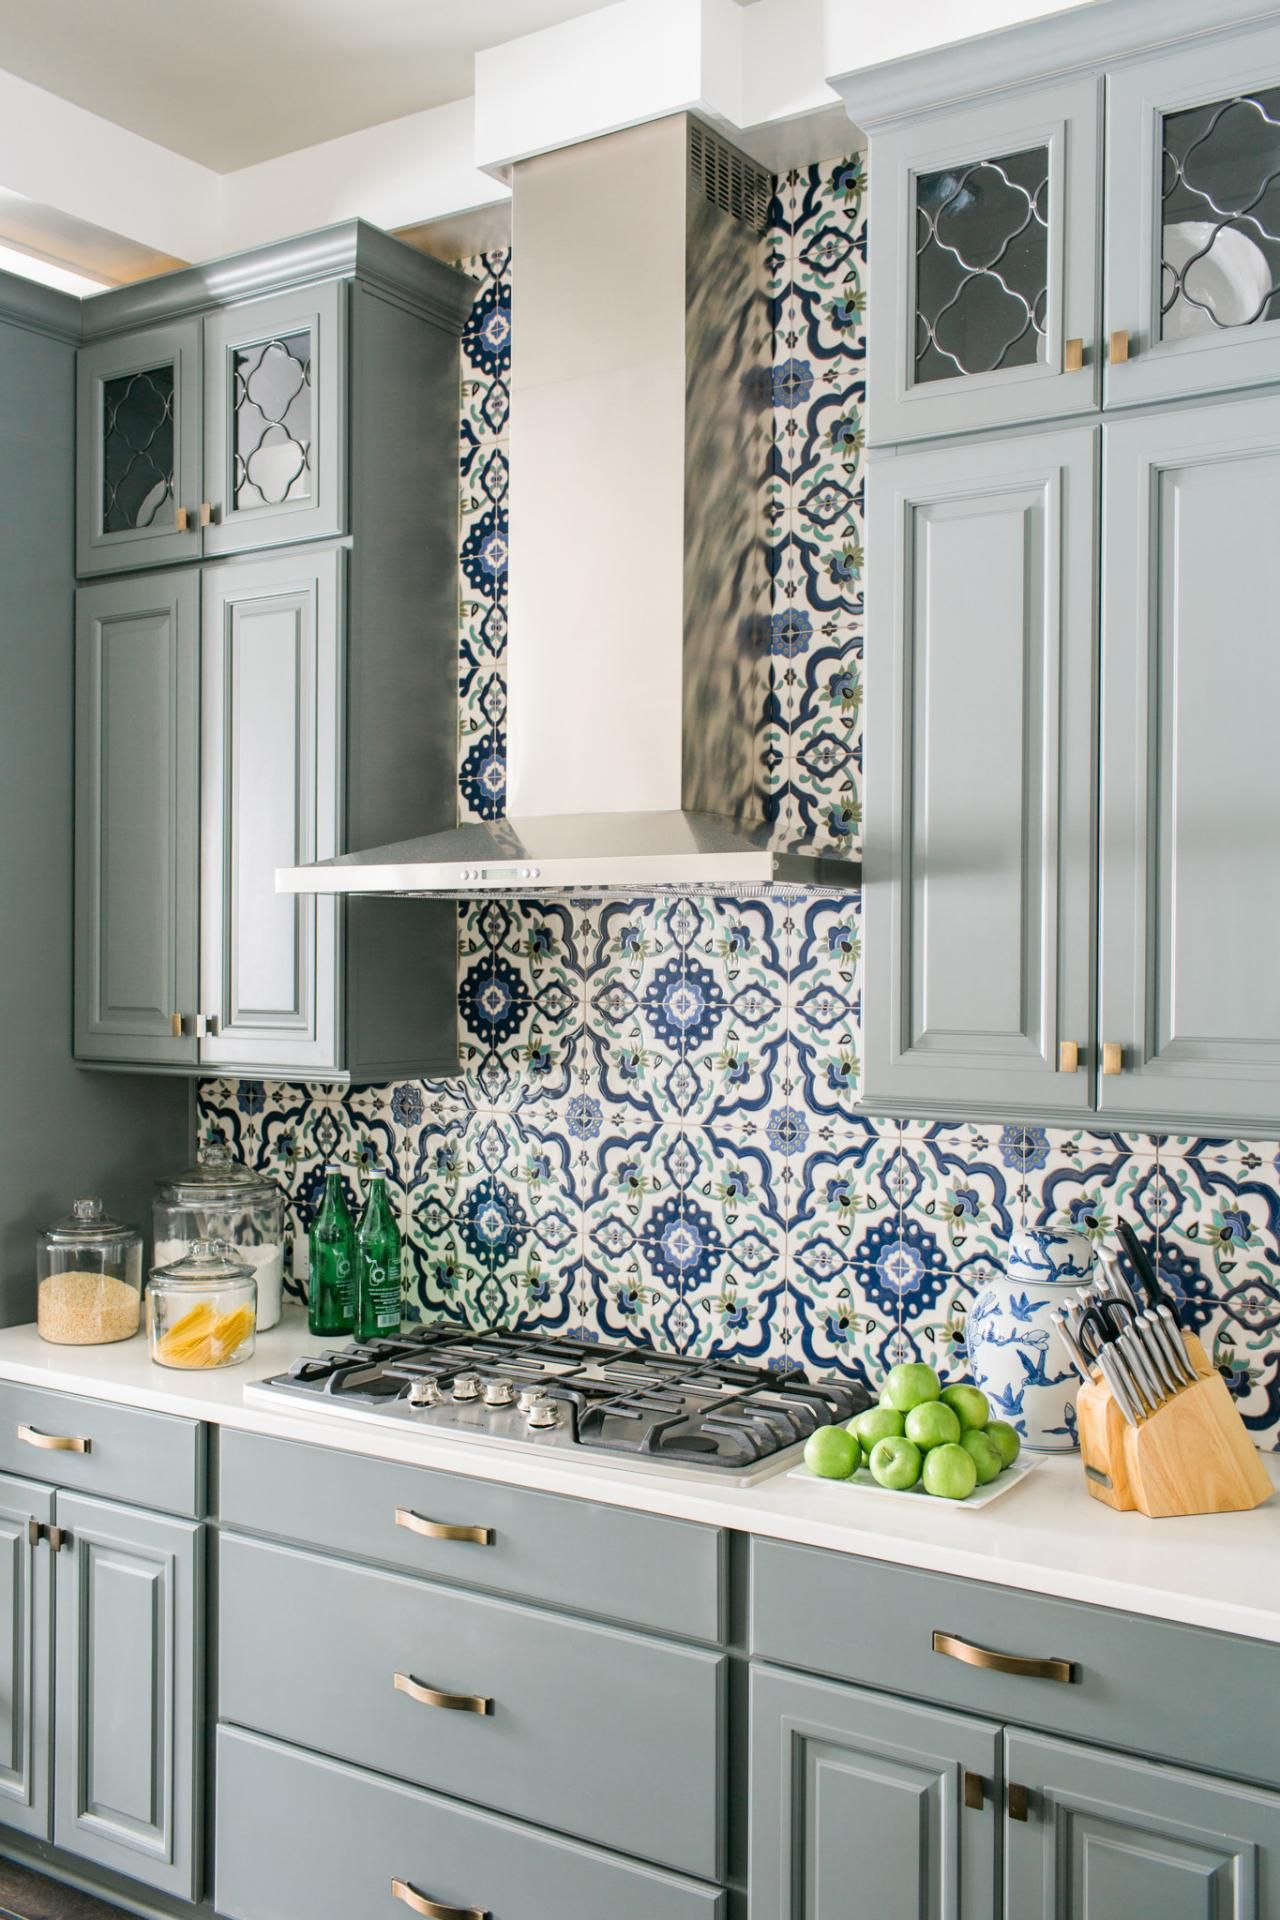 Your kitchen cabinets do not have to be white Explore 23 gorgeous blue kitchen cabinet ideas and see the suggested blue kitchen cabinet paint colors